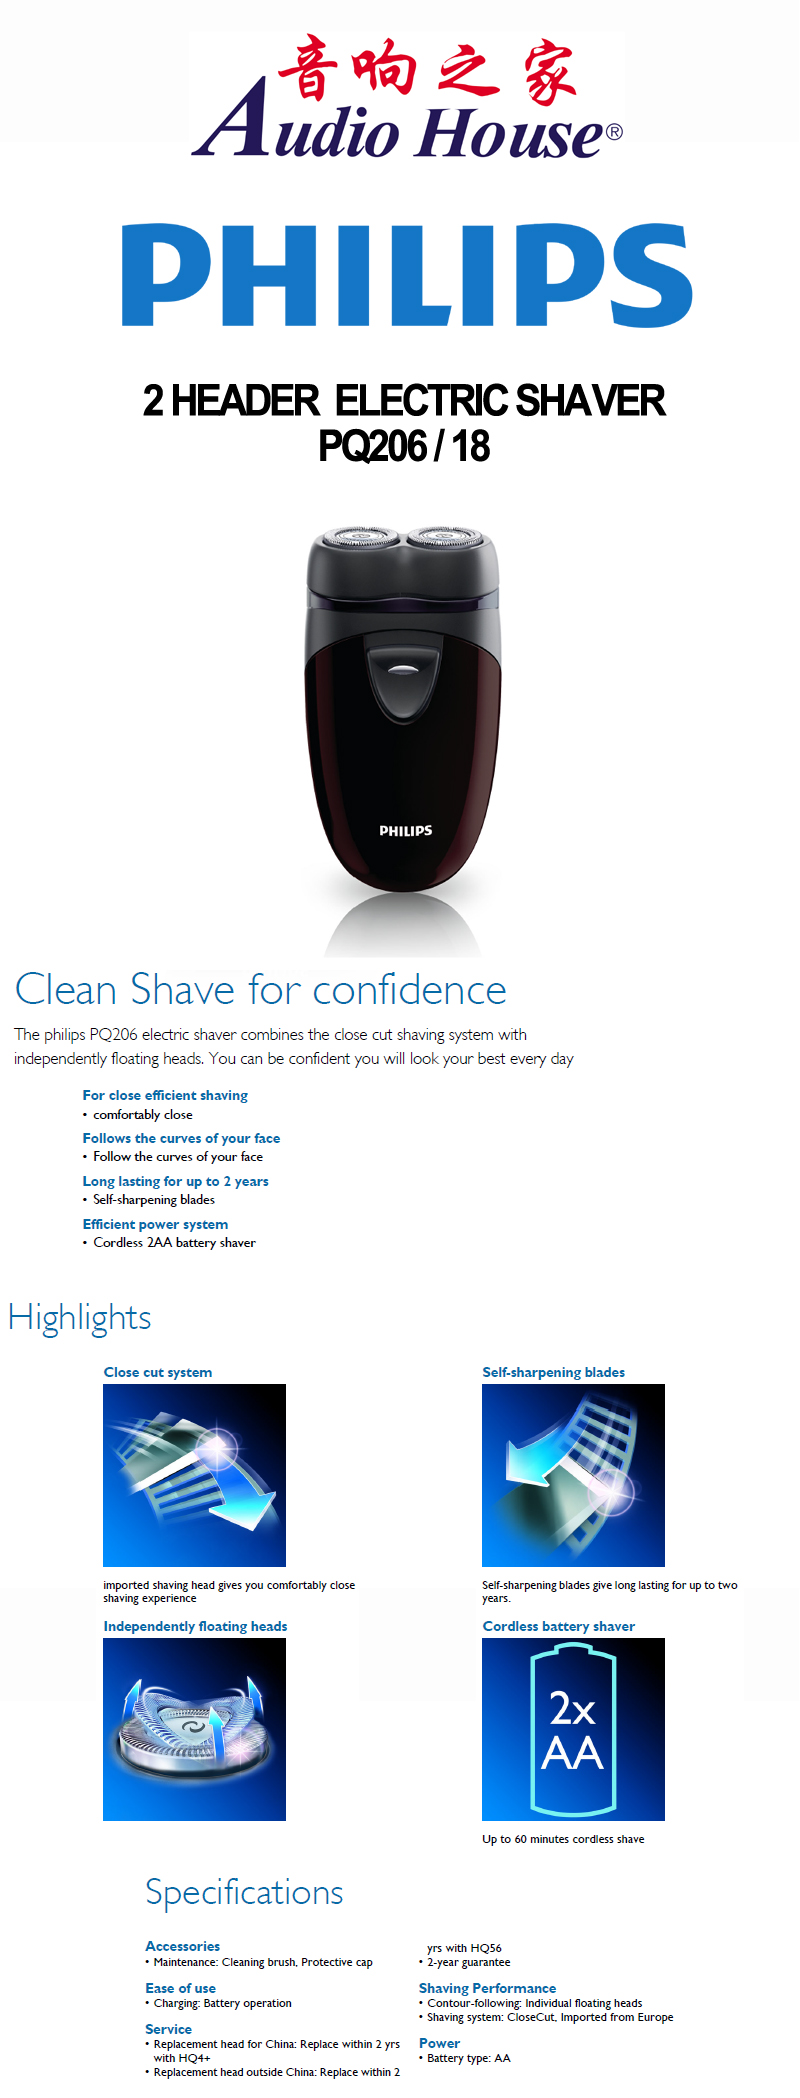 Every Need Want Day Philips Shaver Pq206 2 Header Electric